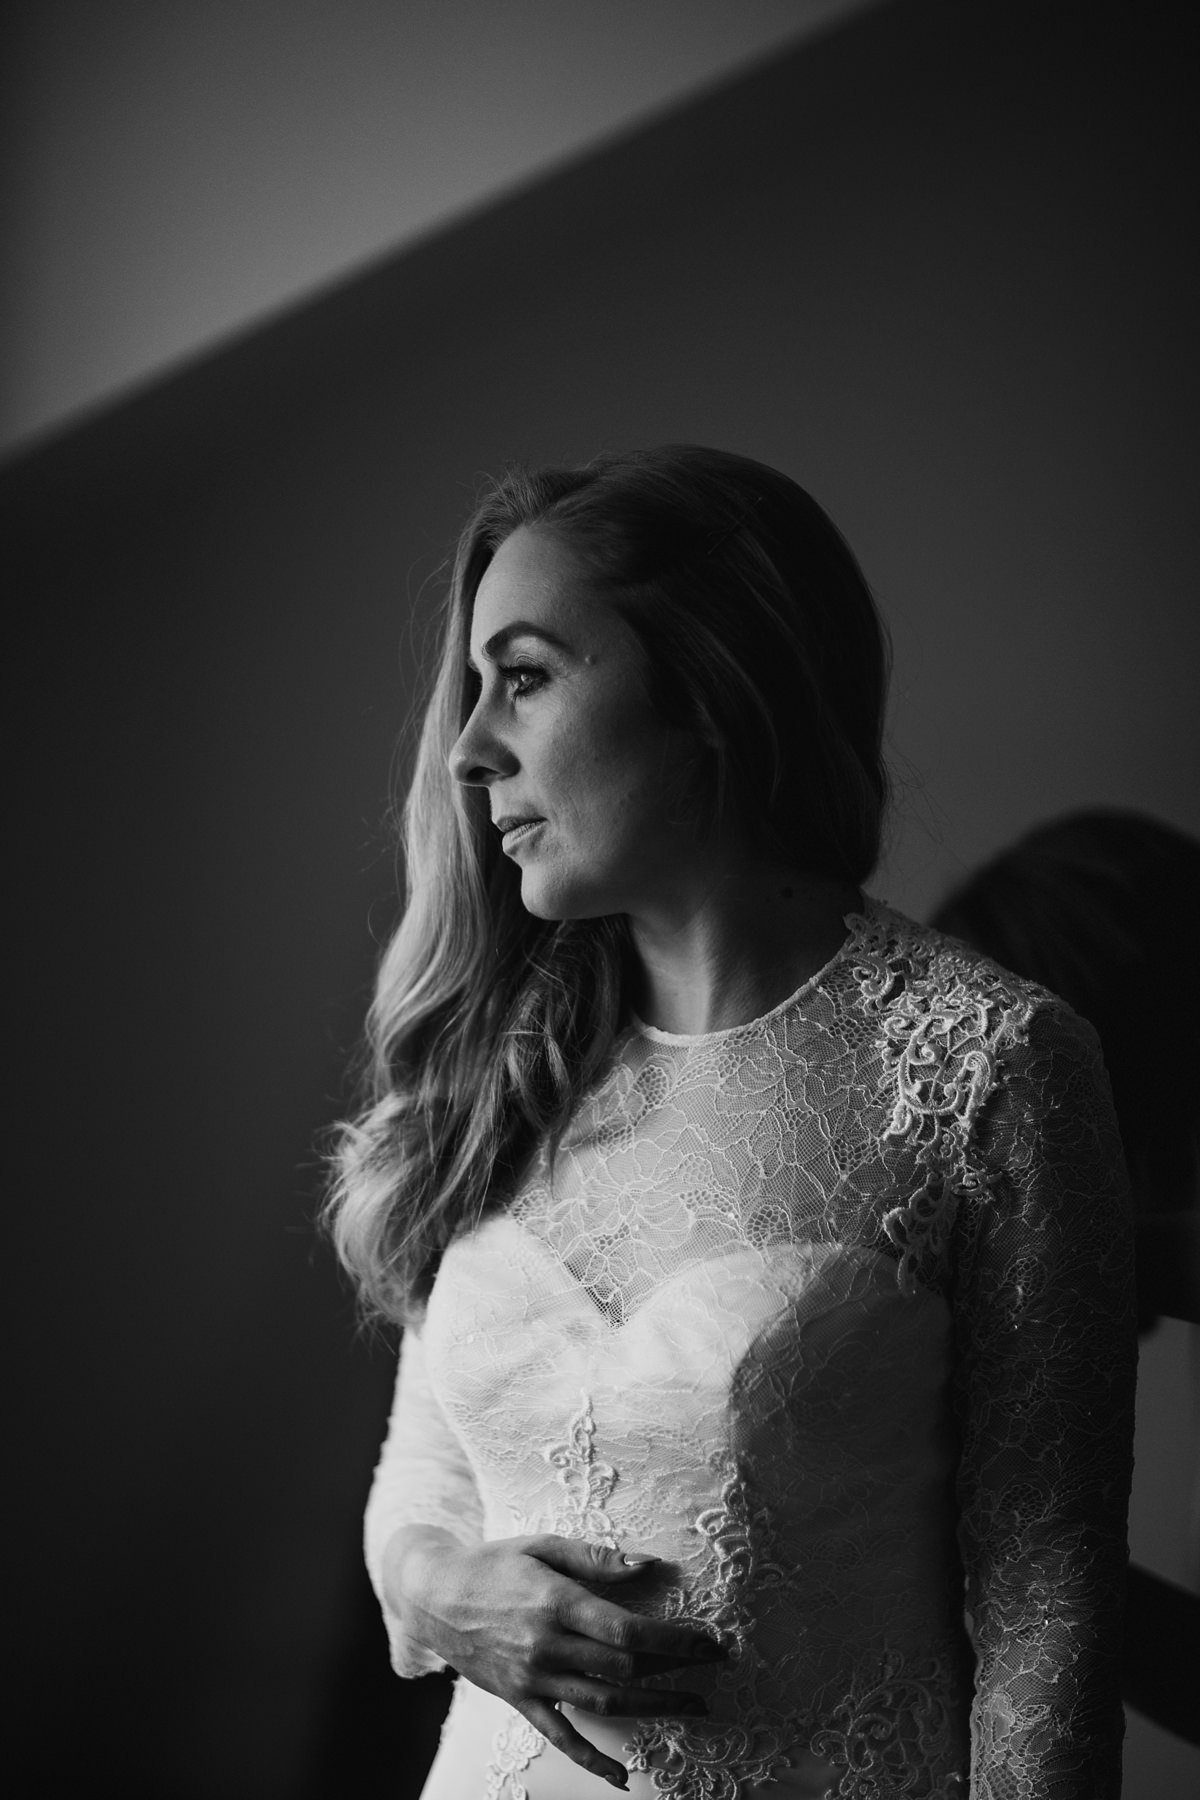 black and white portrait of a nervous bride taken by the window